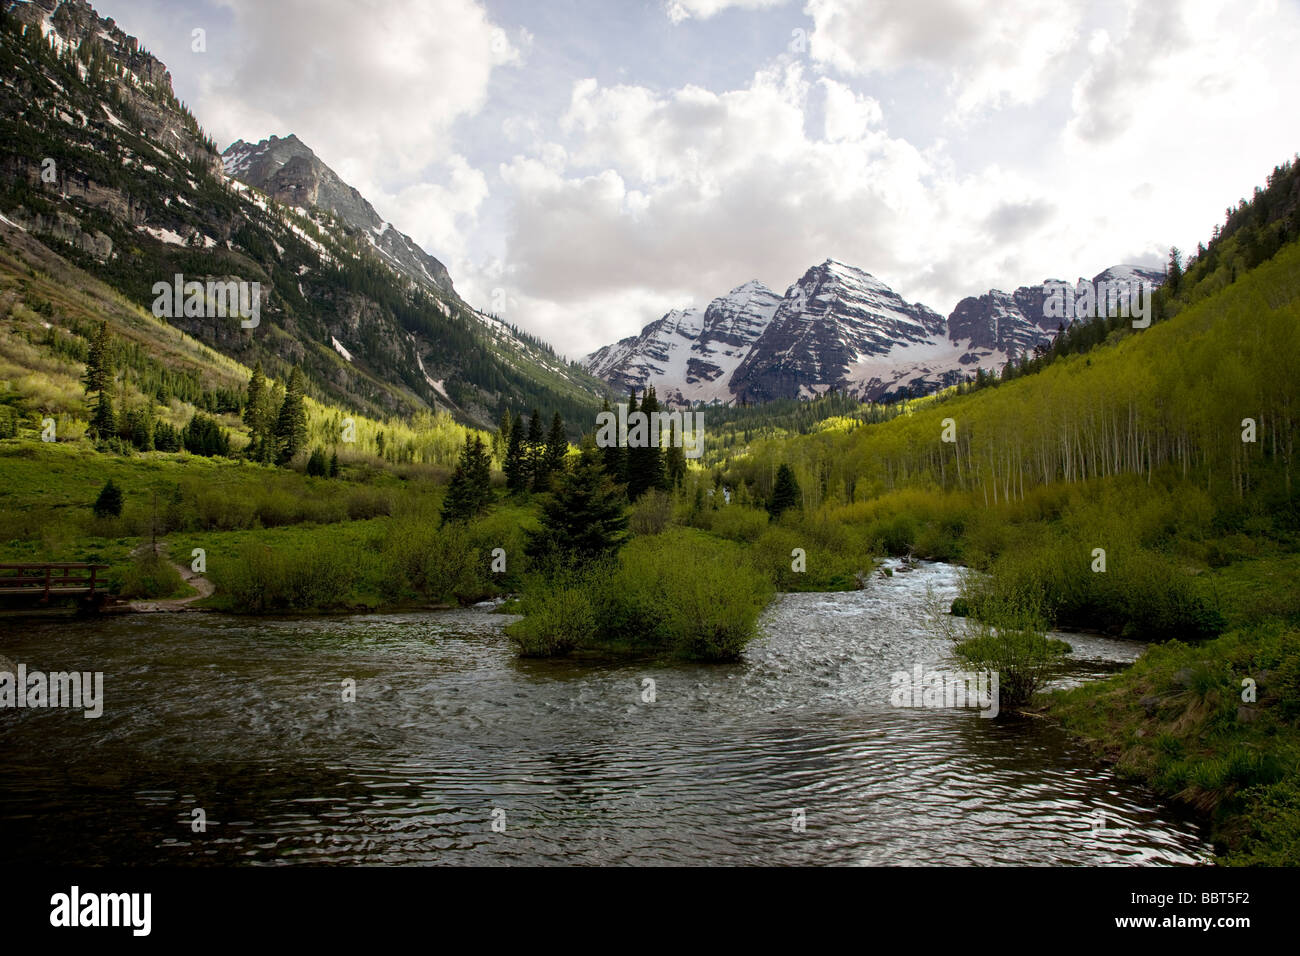 Maroon Lake North & Süden Maroon Gipfeln Maroon Bells Snowmass Wildnis Bereich White River National Forest Stockbild